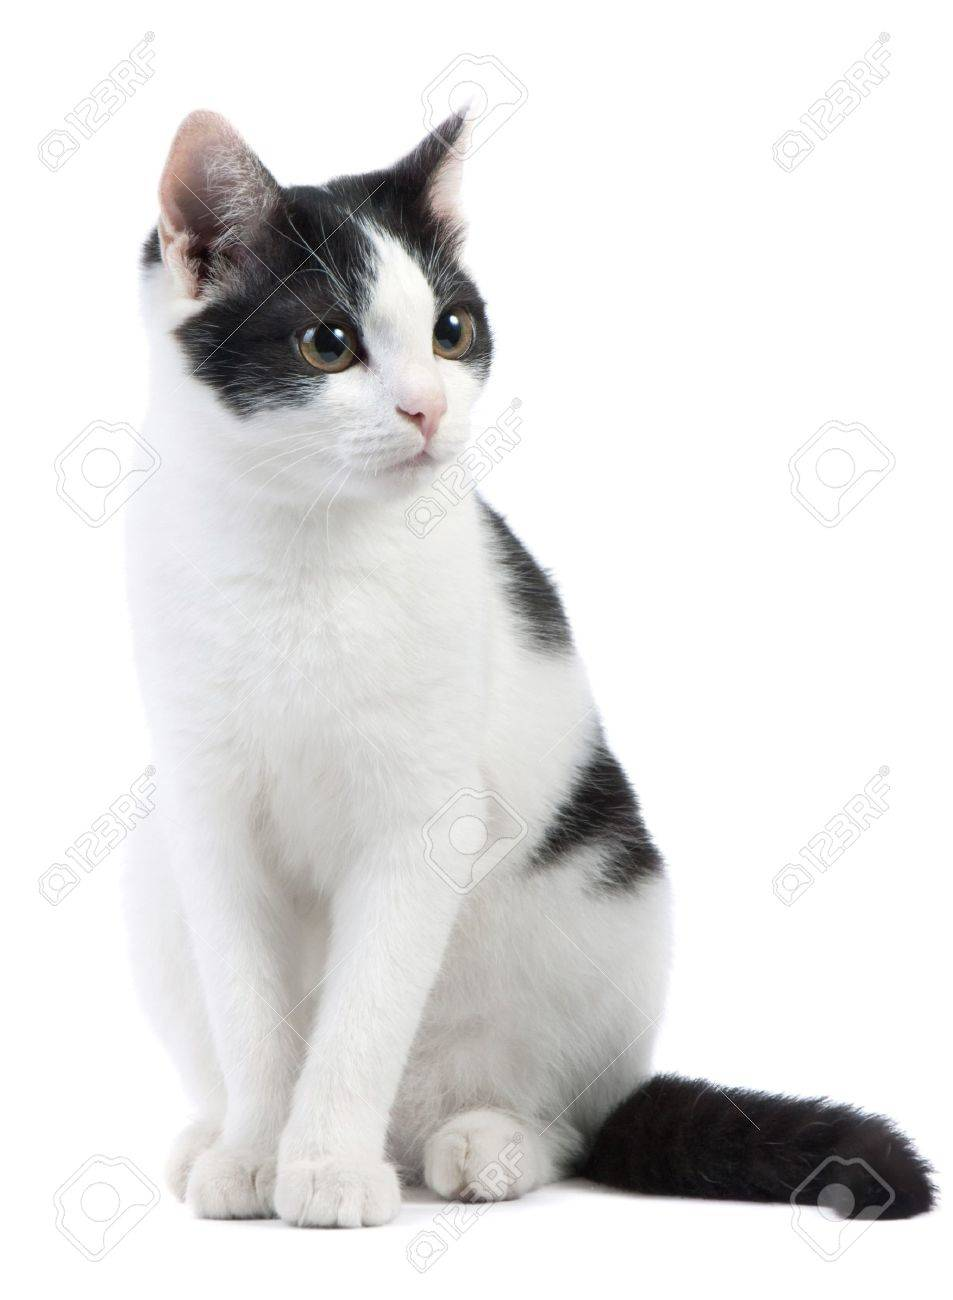 cute black and white kitten on a white background Stock Photo - 8032643